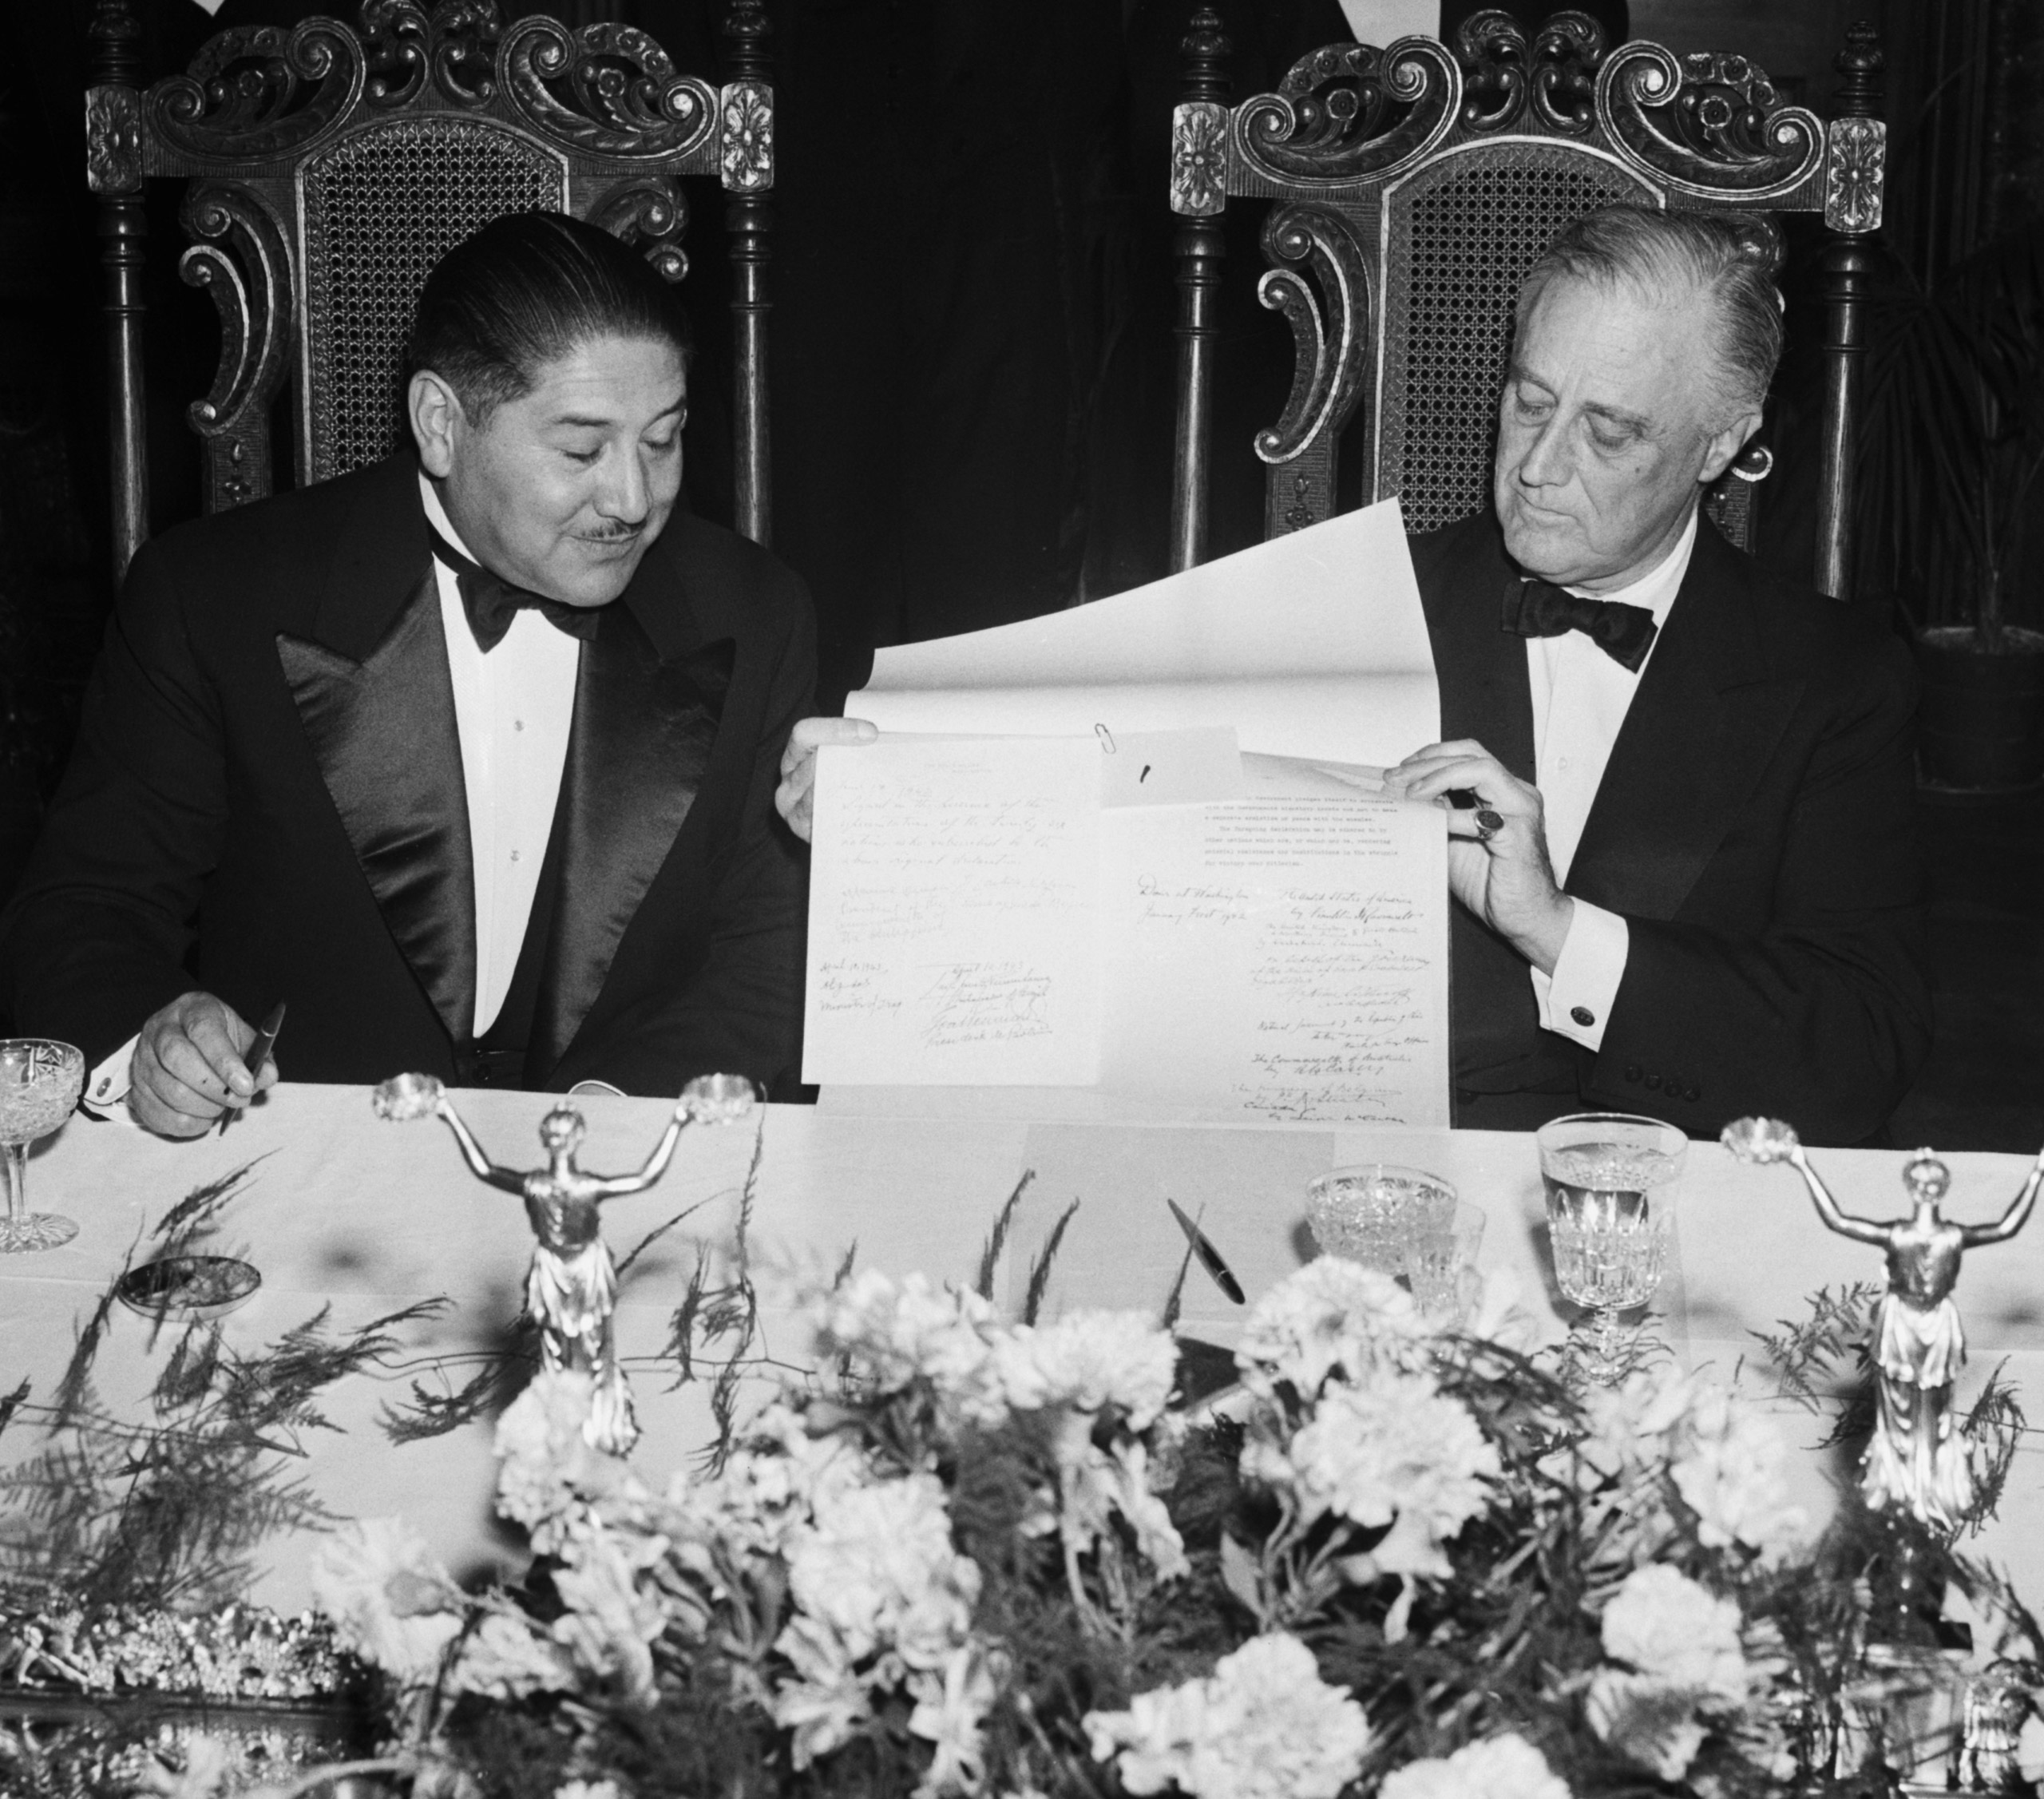 President Enrique Penaranda of Bolivia, and President Franklin Roosevelt of the United States at a White House state dinner on May 5, 1943. They are shown looking at the United Nations' pact, in which Penaranda pledged his country's tin-producing resources against the axis.